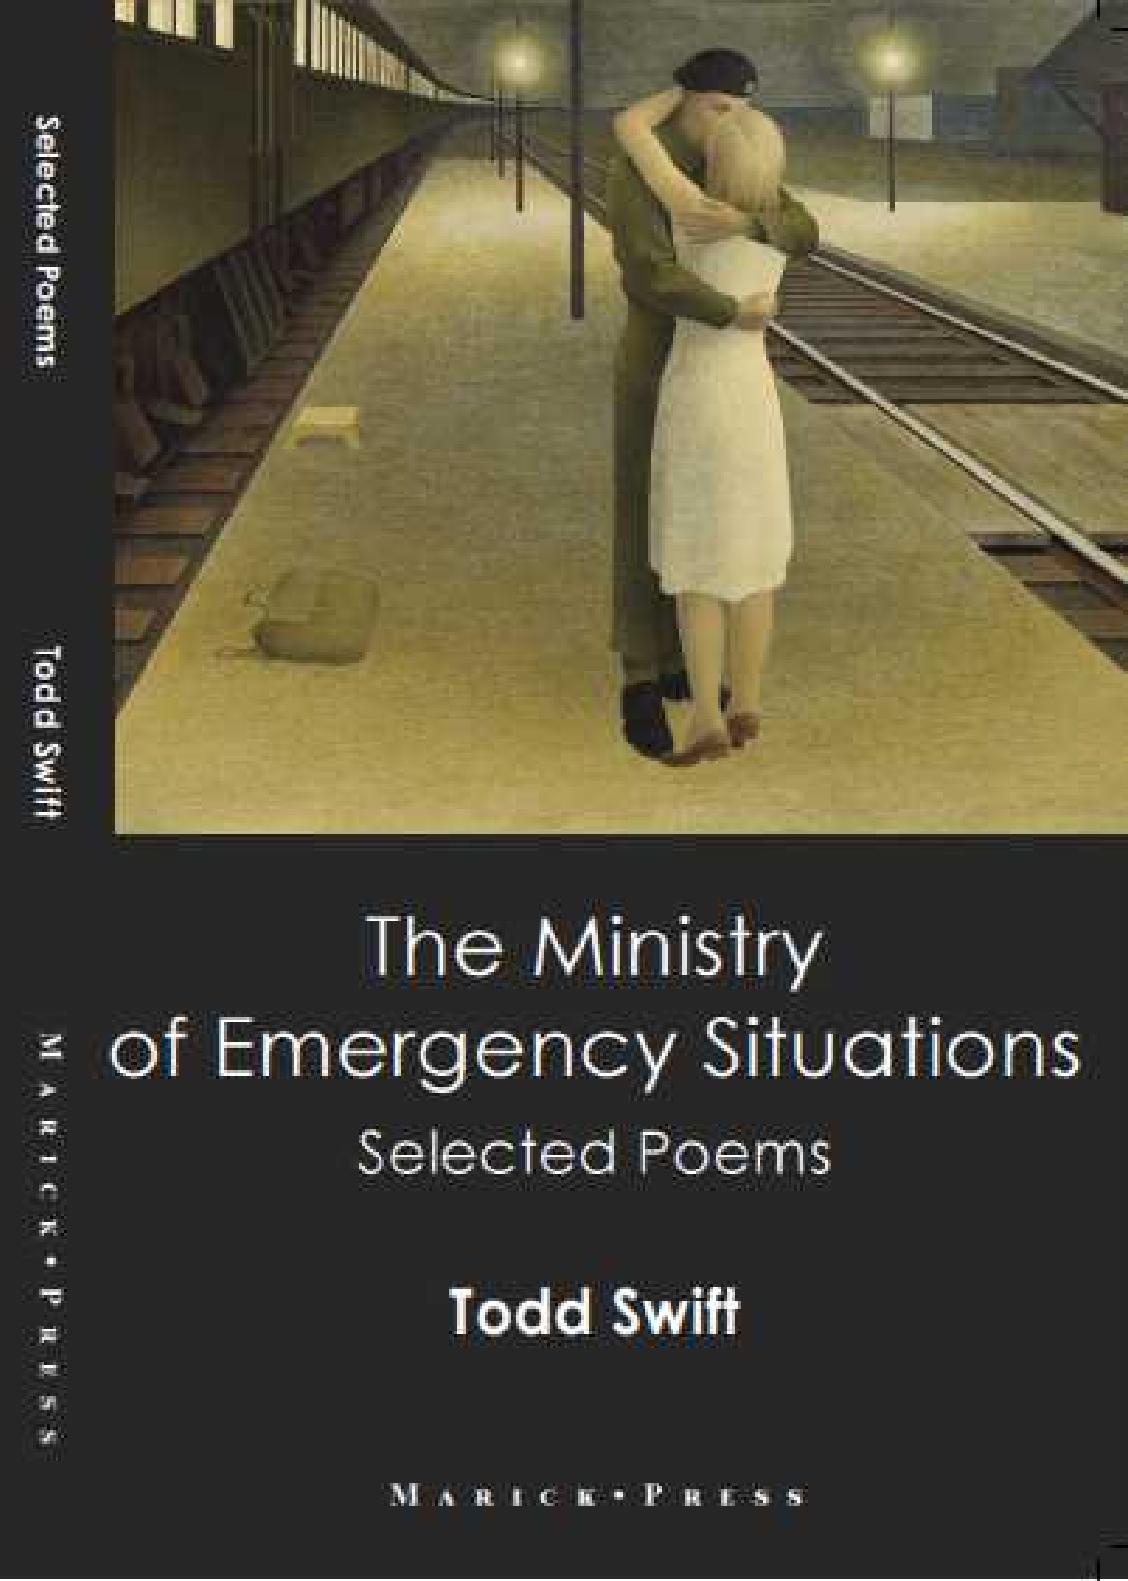 Todd Swift - The Ministry of Emergency Situations